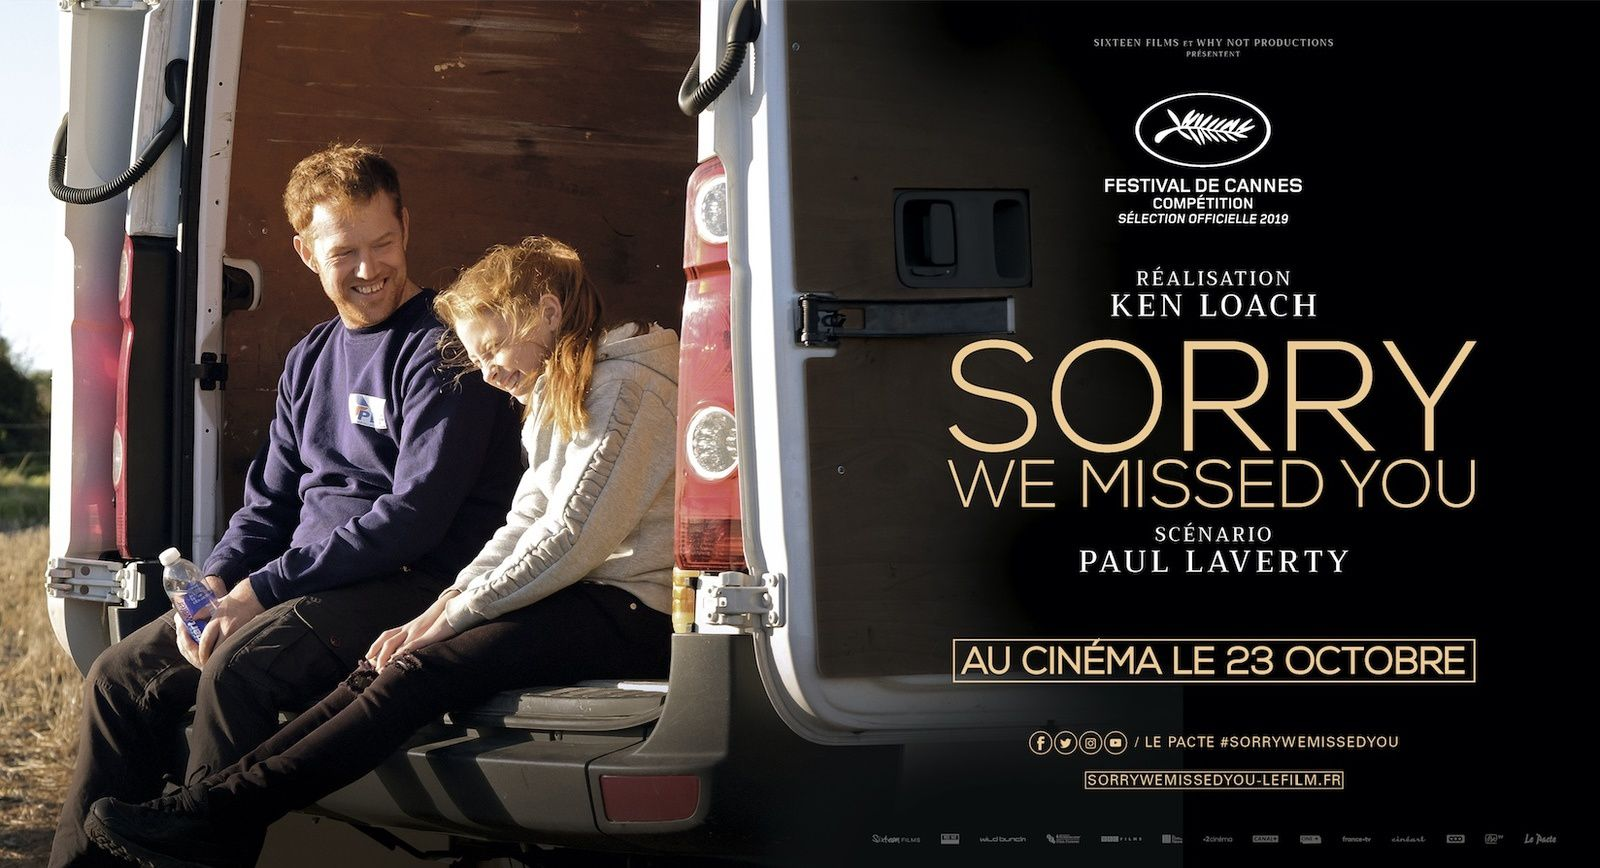 Bande-annonce du film Sorry we missed you, de Ken Loach.